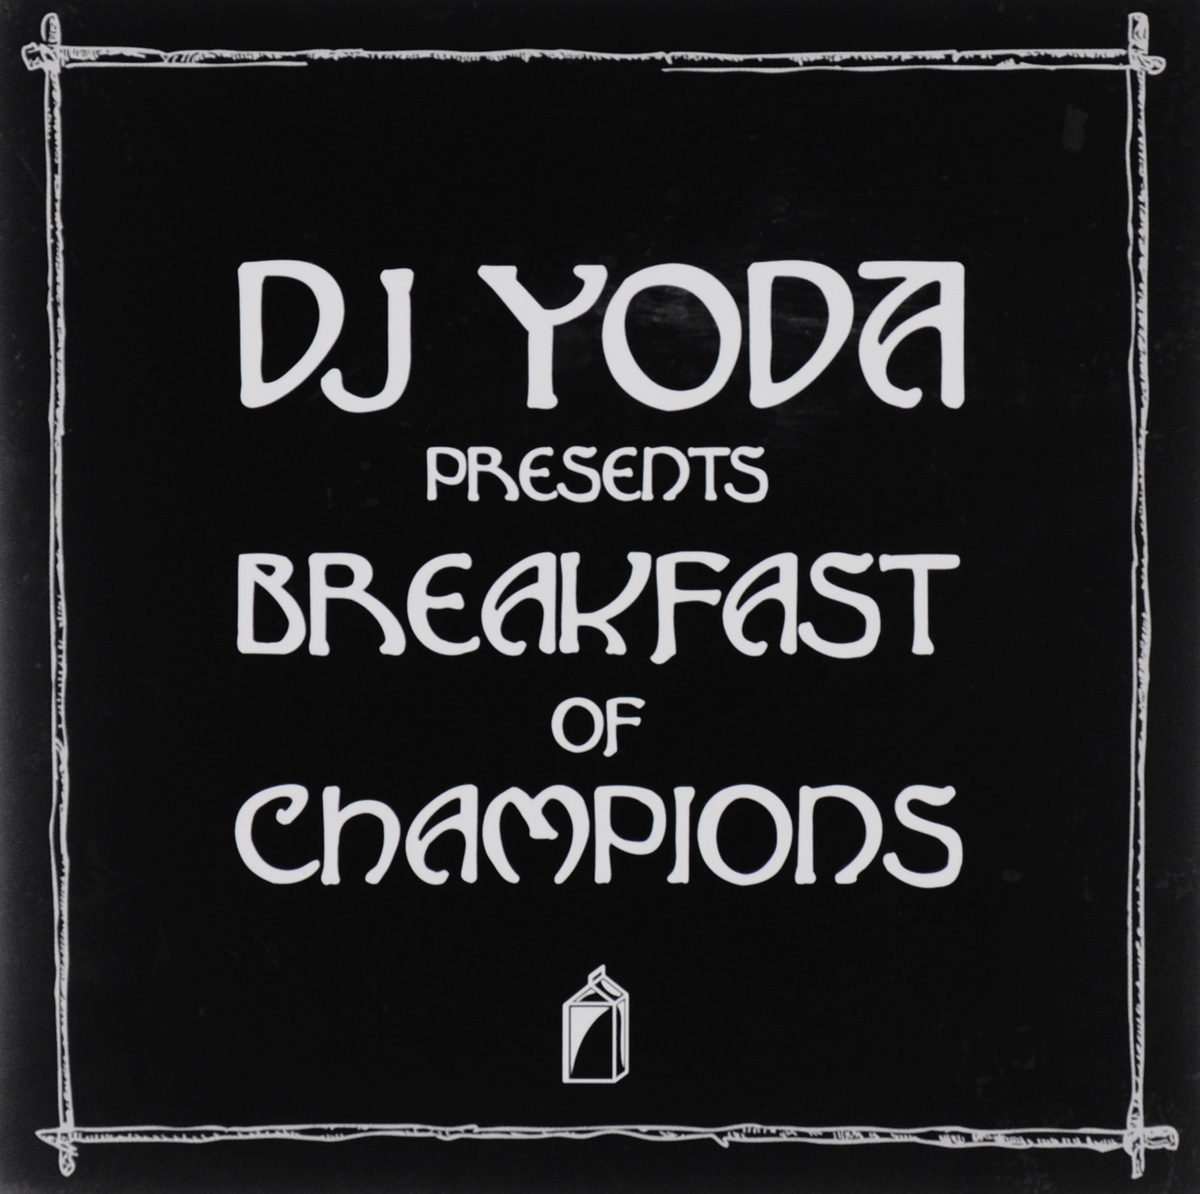 DJ Yoda DJ Yoda. Breakfast of Champions dj schwede dj schwede fascinated maxi single lp